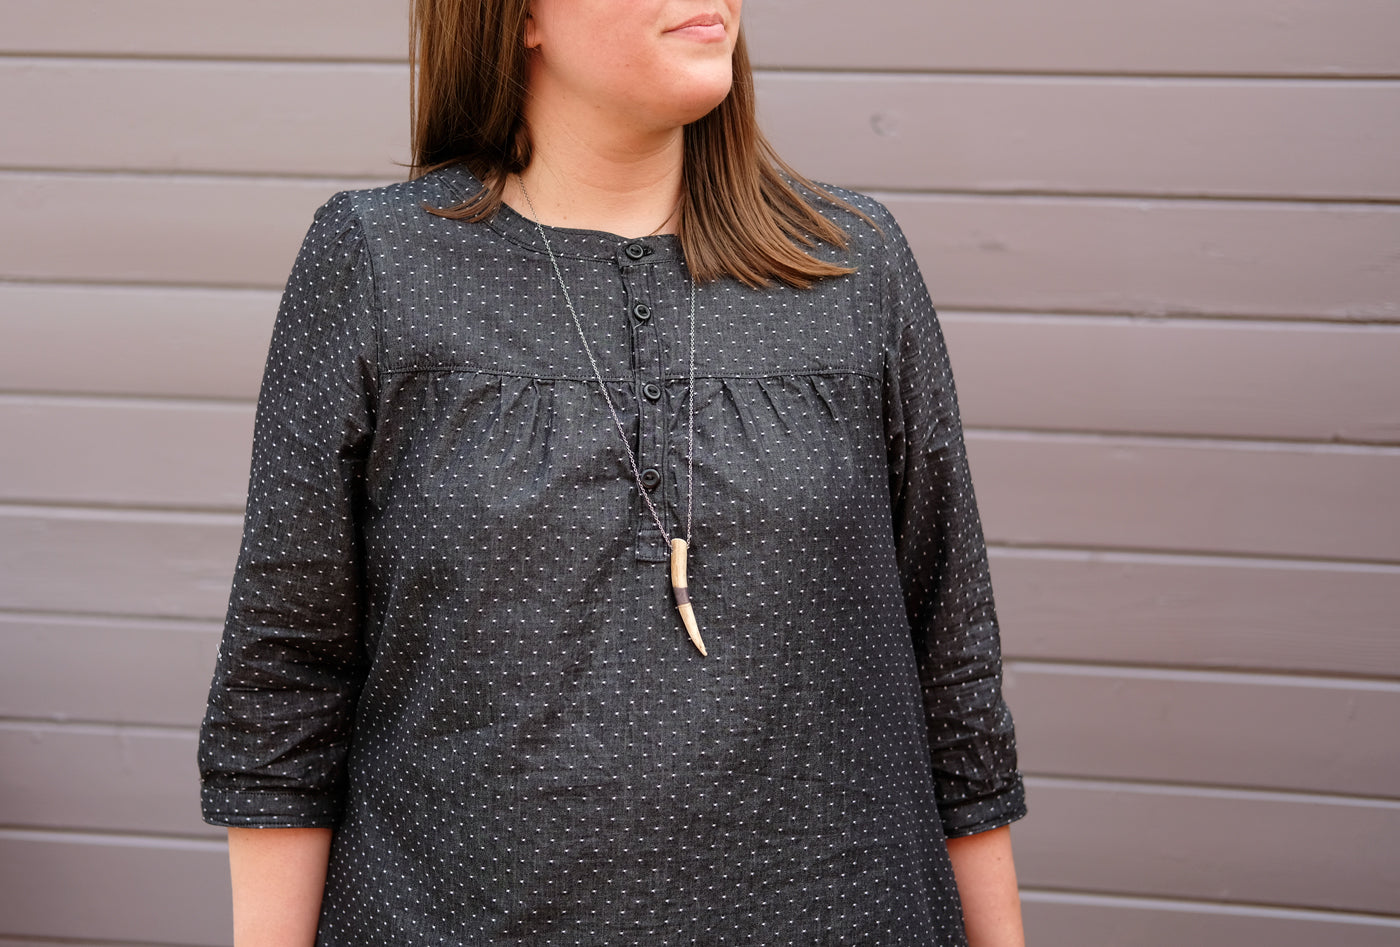 Placket Detail on Kaylee's Black Chambray dot Brome